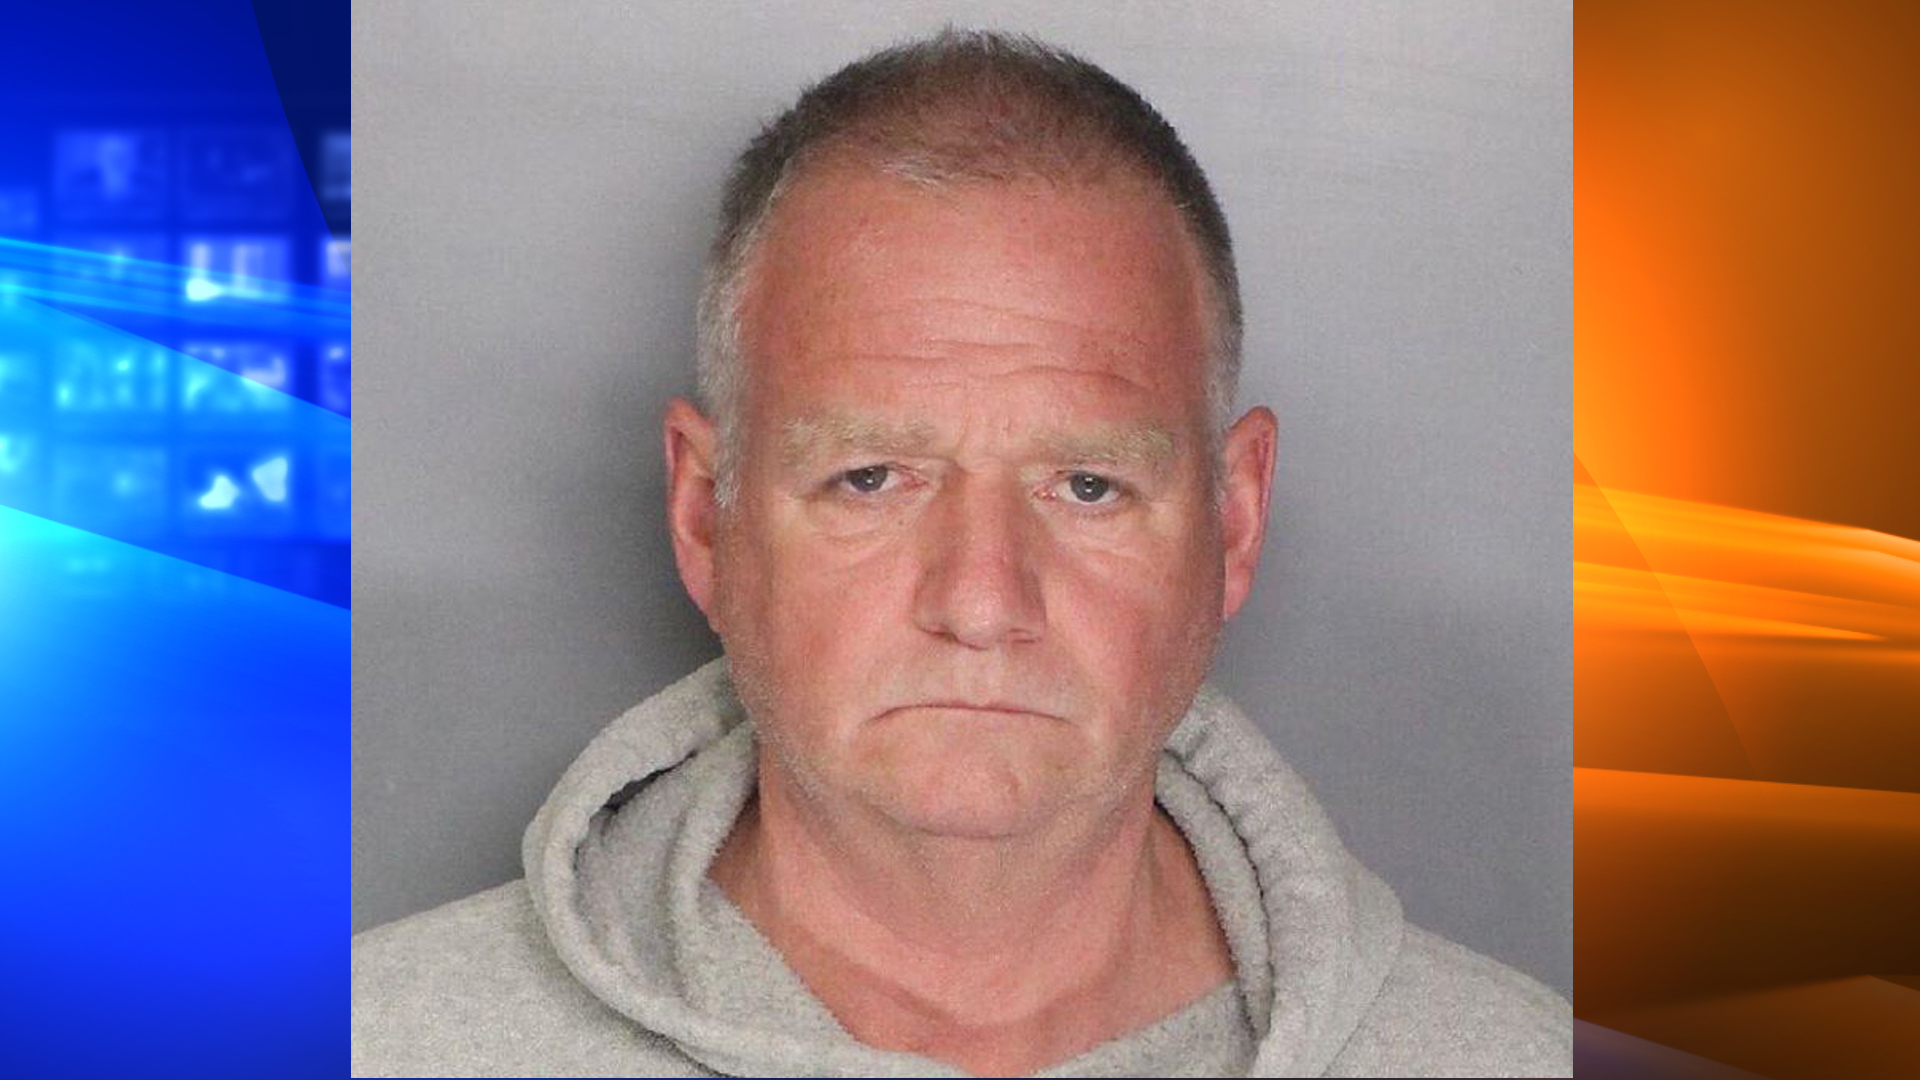 Folsom police released this booking photo of Gregory Harms on Nov. 11, 2019.